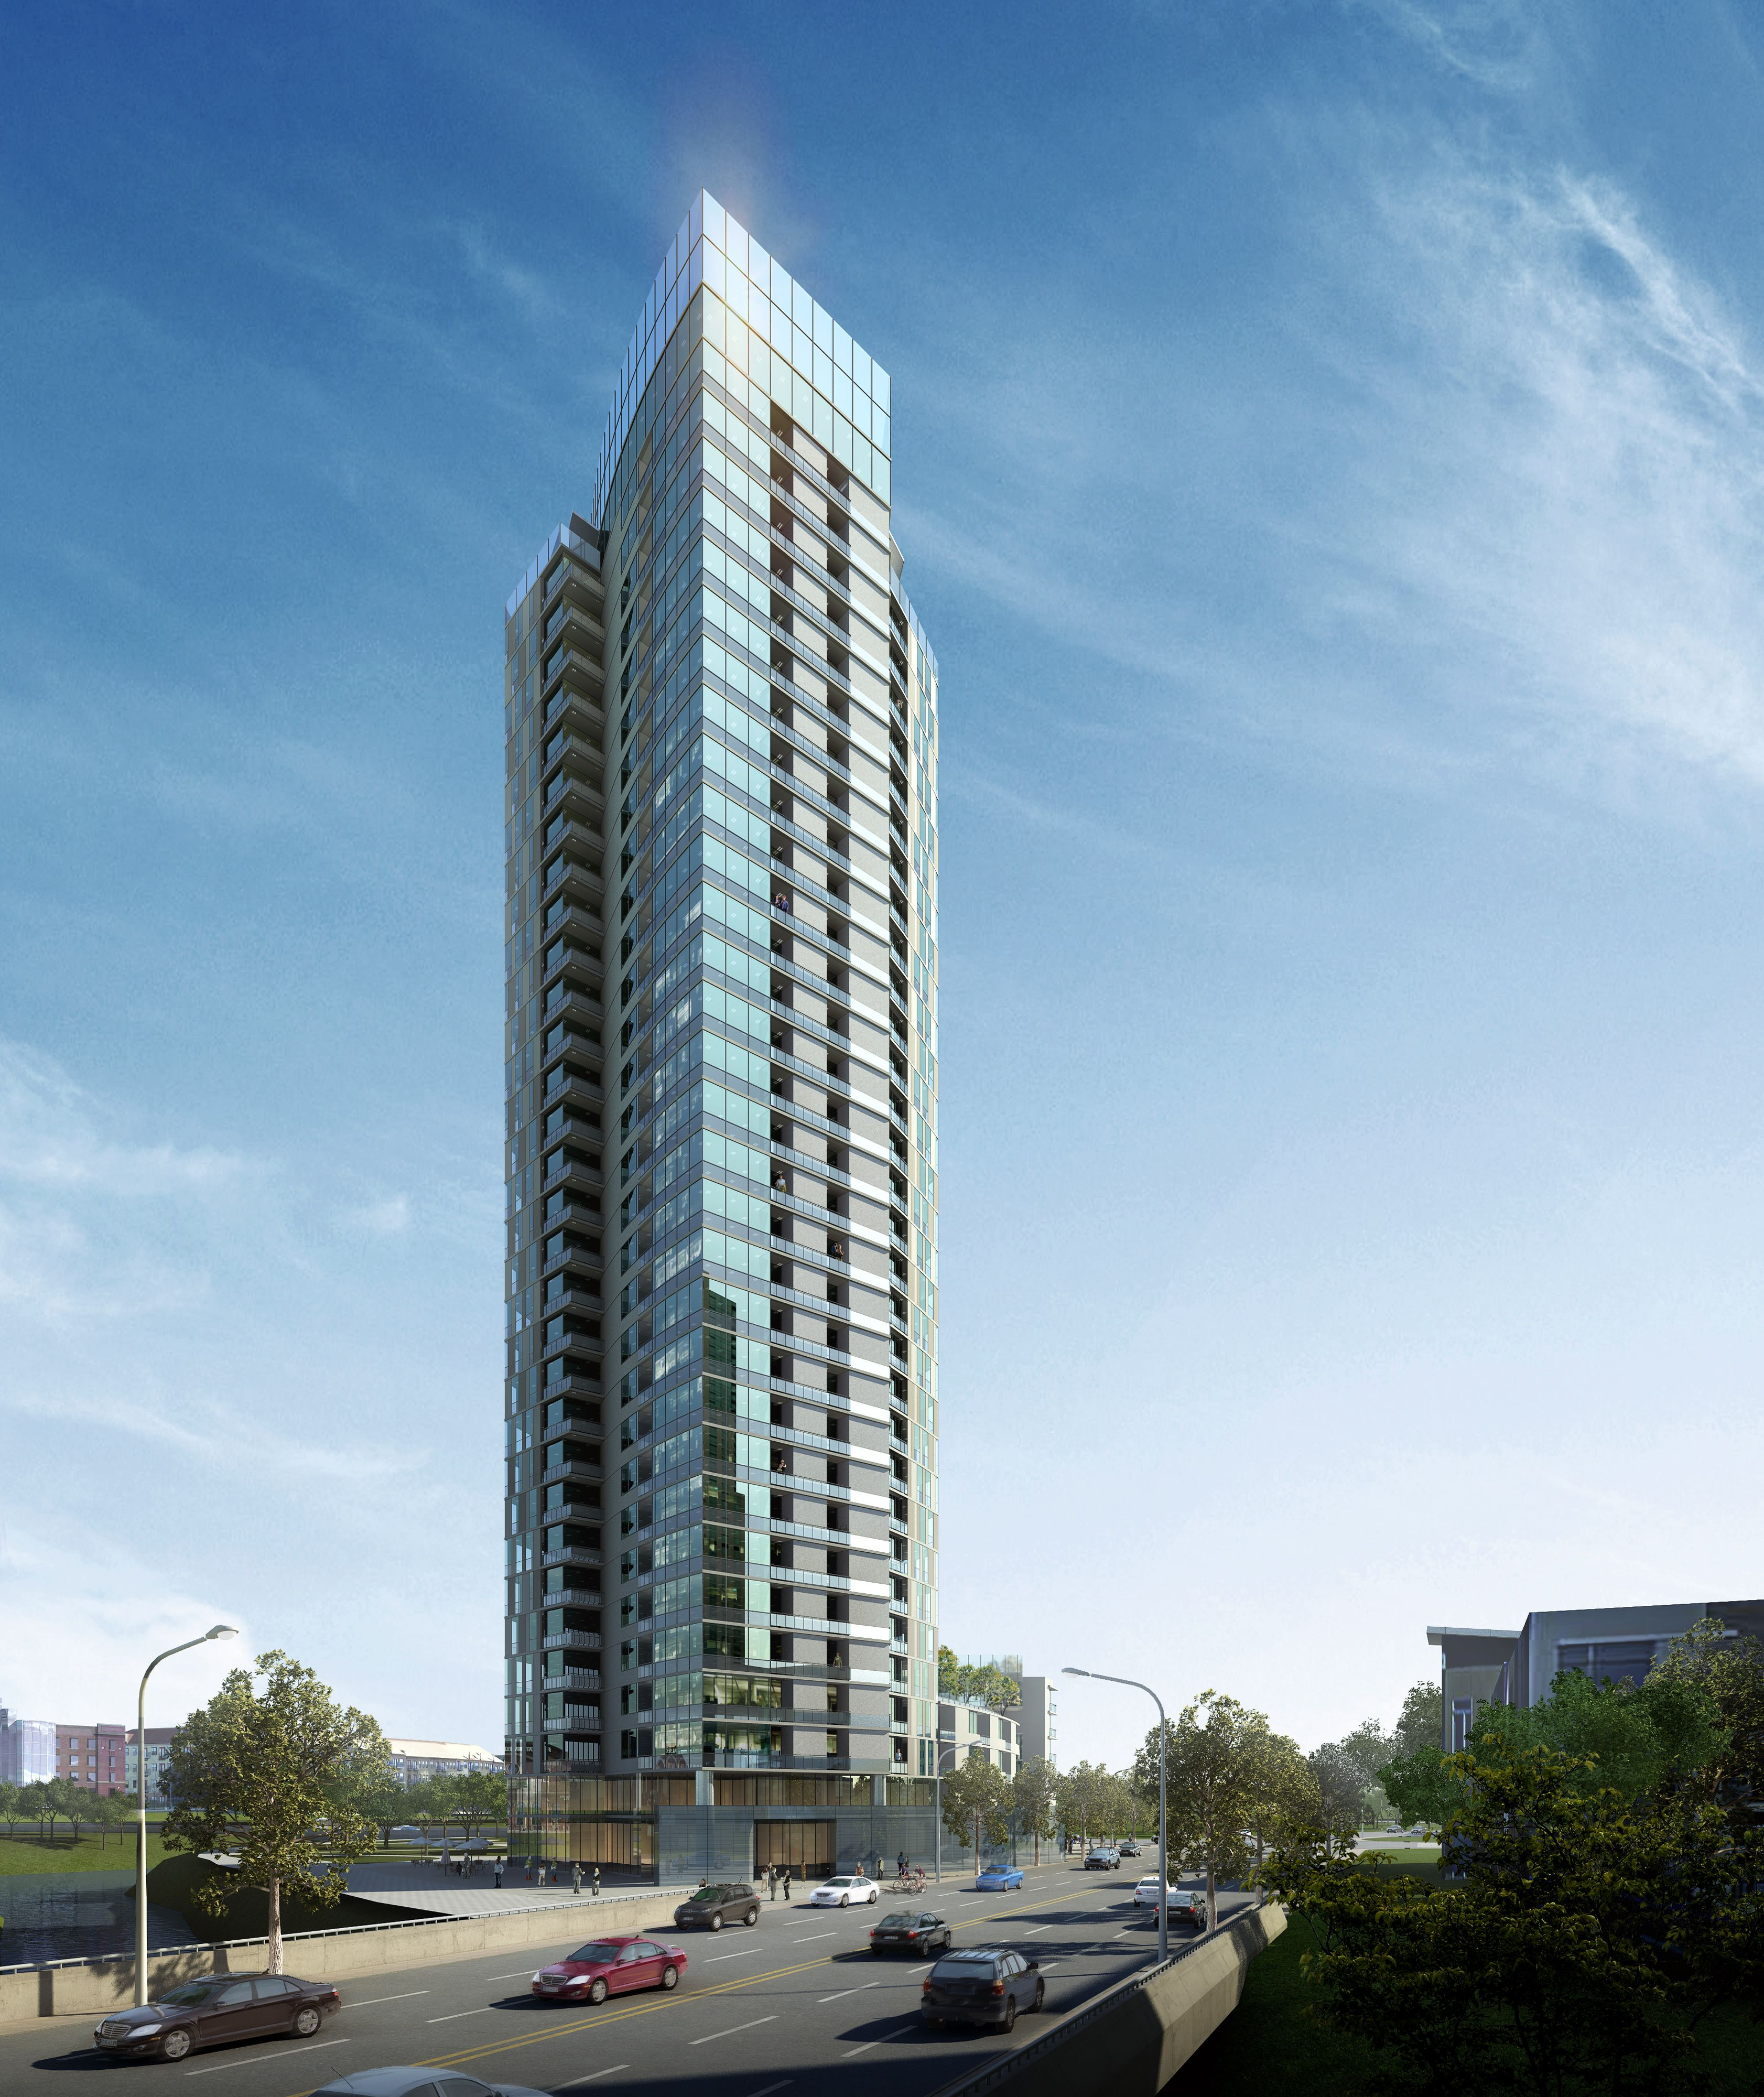 Luxury Apartment Building Entrance: Approved 34-Story Luxury Apartment Tower To Rise In Denver